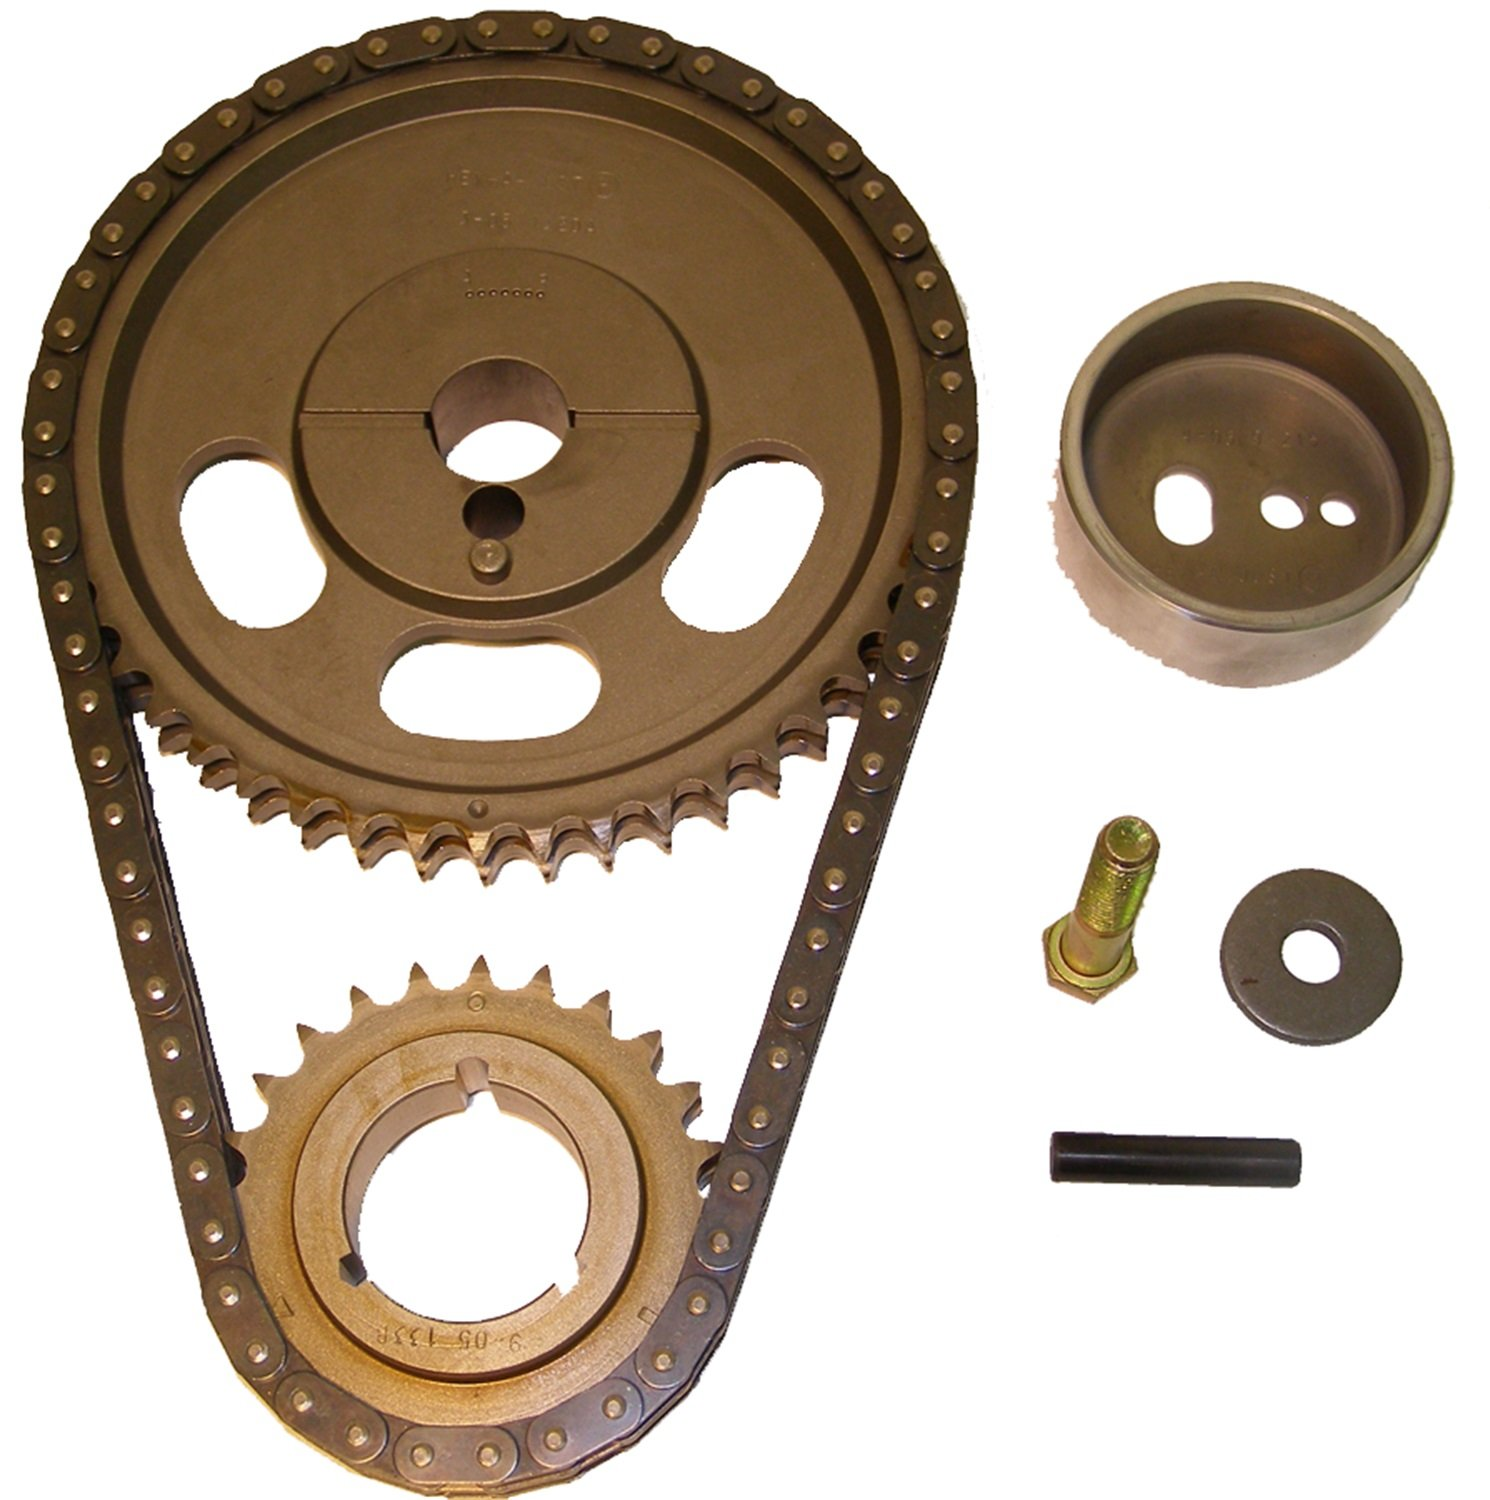 Cloyes 9-3121A-10 Hex-A-Just True Roller Engine Timing Set